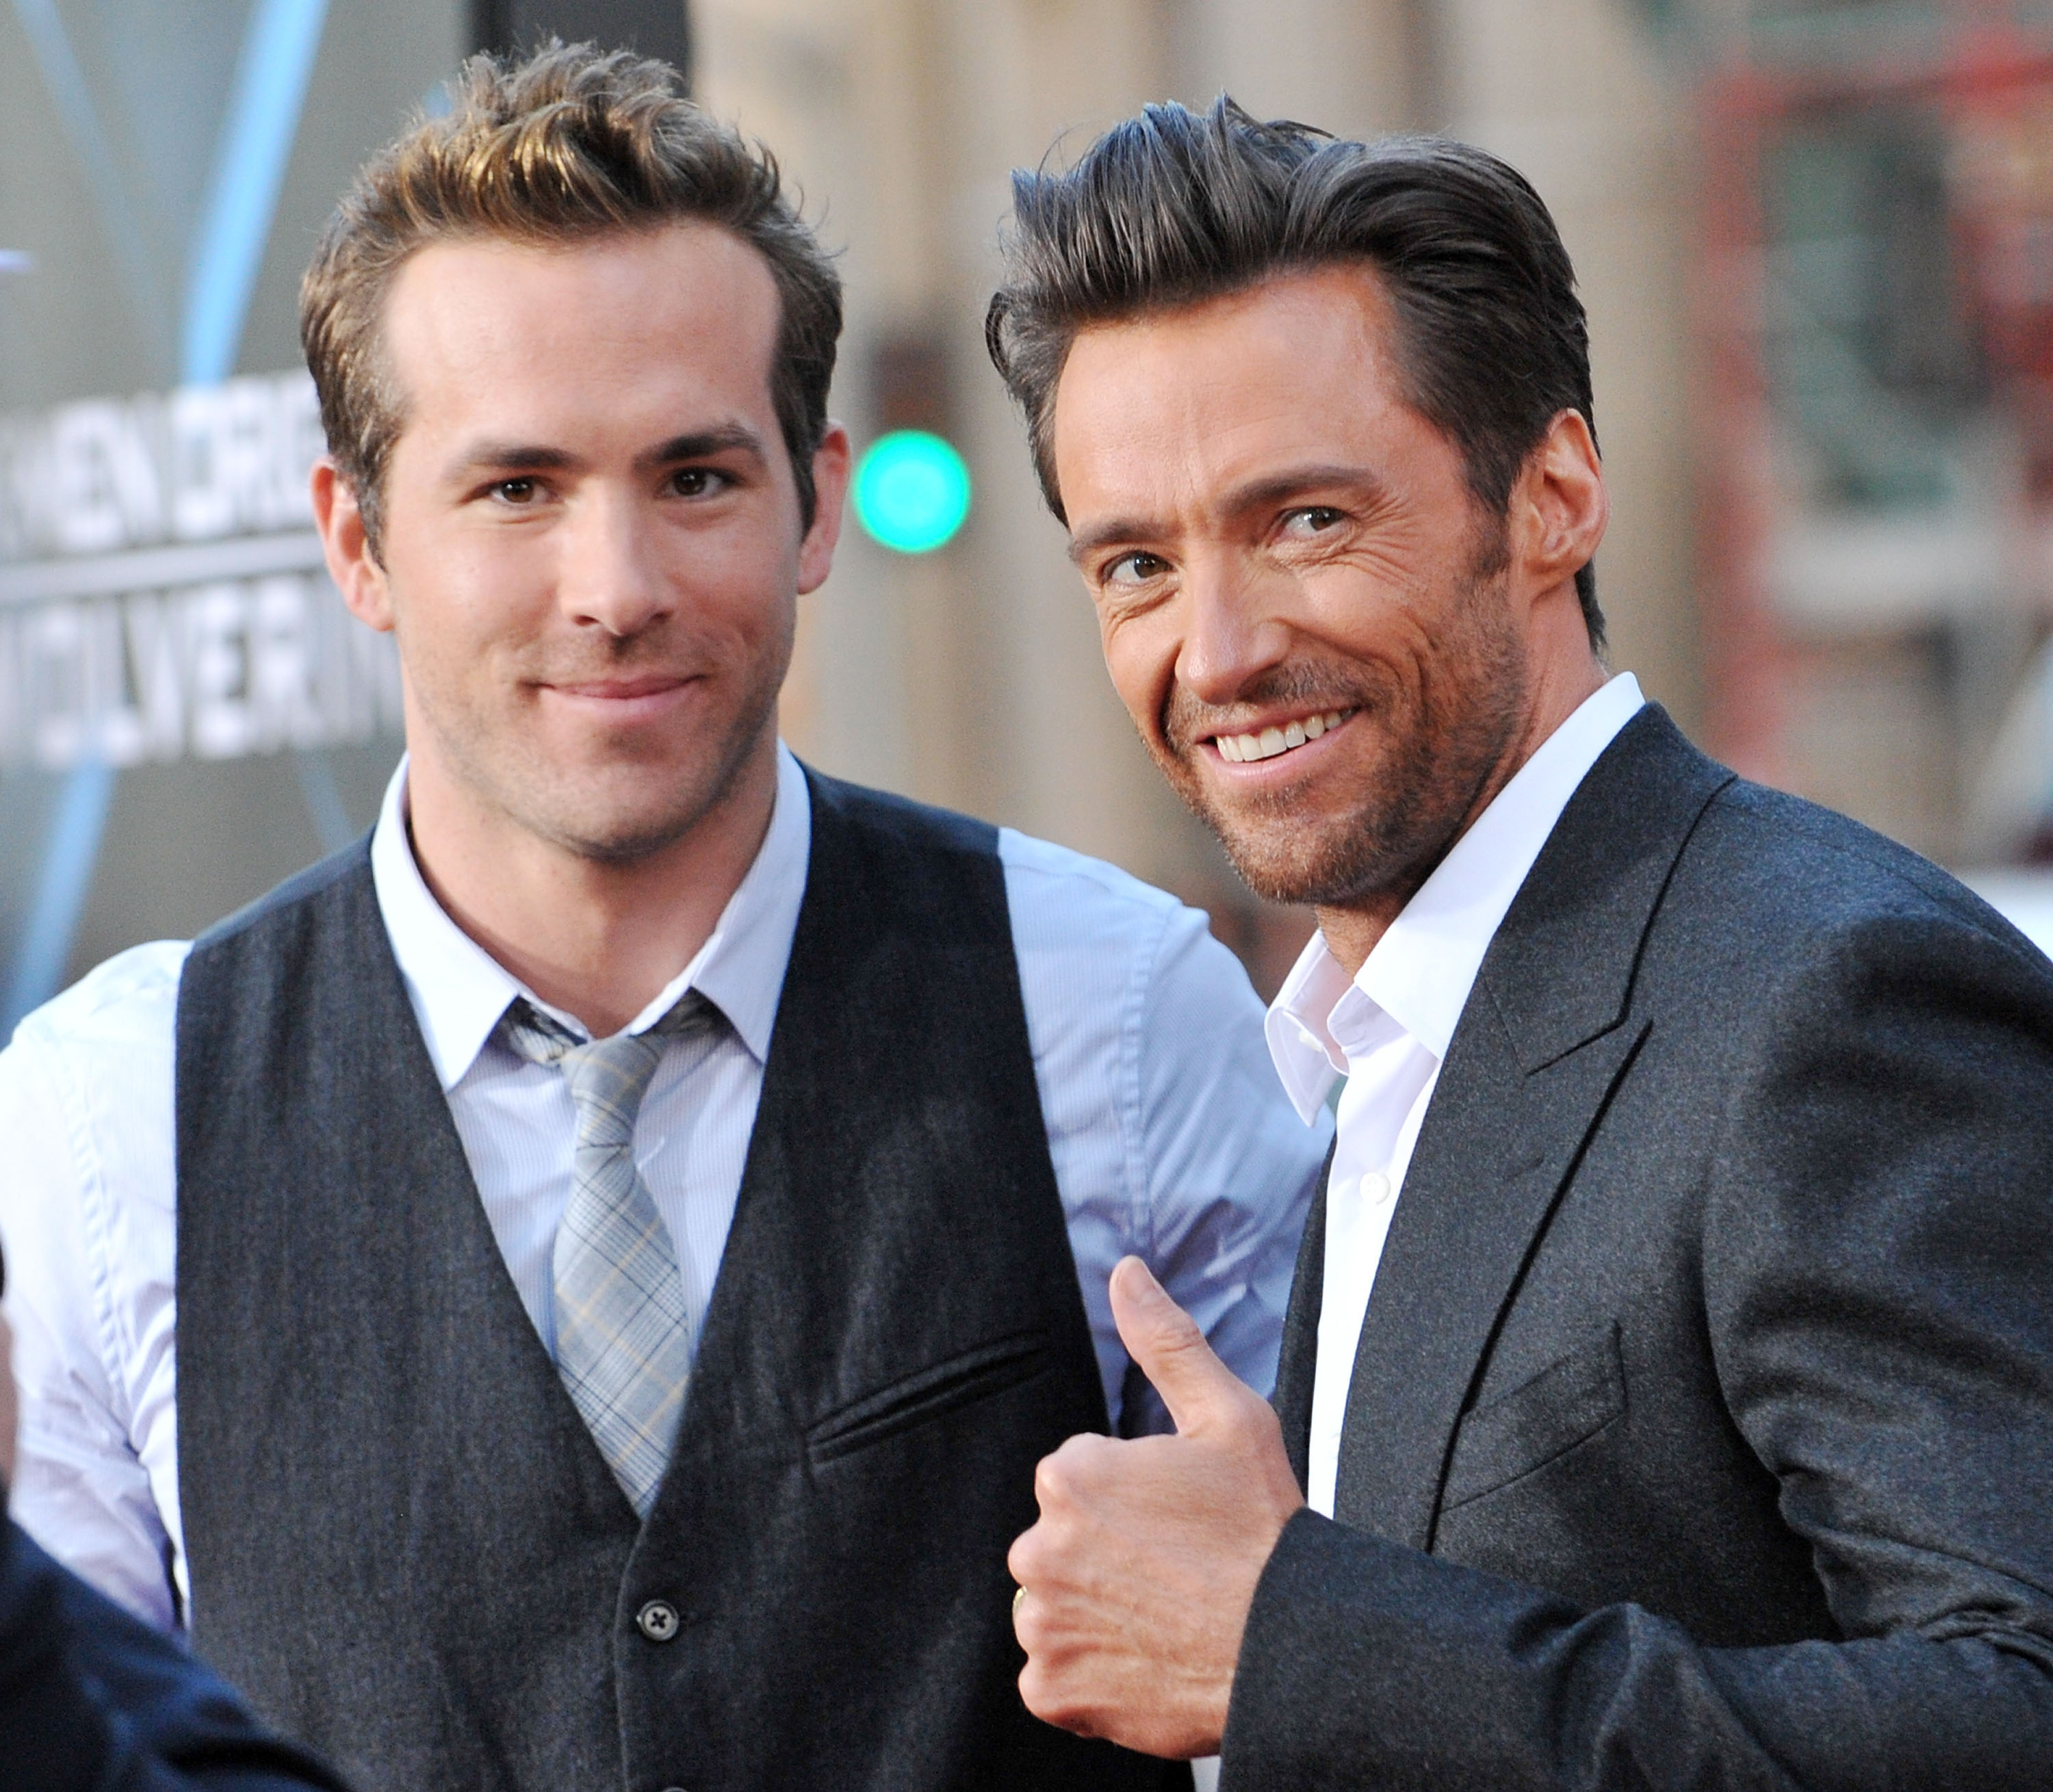 Actor Ryan Reynolds (L) and actor Hugh Jackman arrive at the Los Angeles Industry Screening  Xmen Origins: Wolverine  at Grauman's Chinese Theater on April 28, 2009 in Hollywood, California.